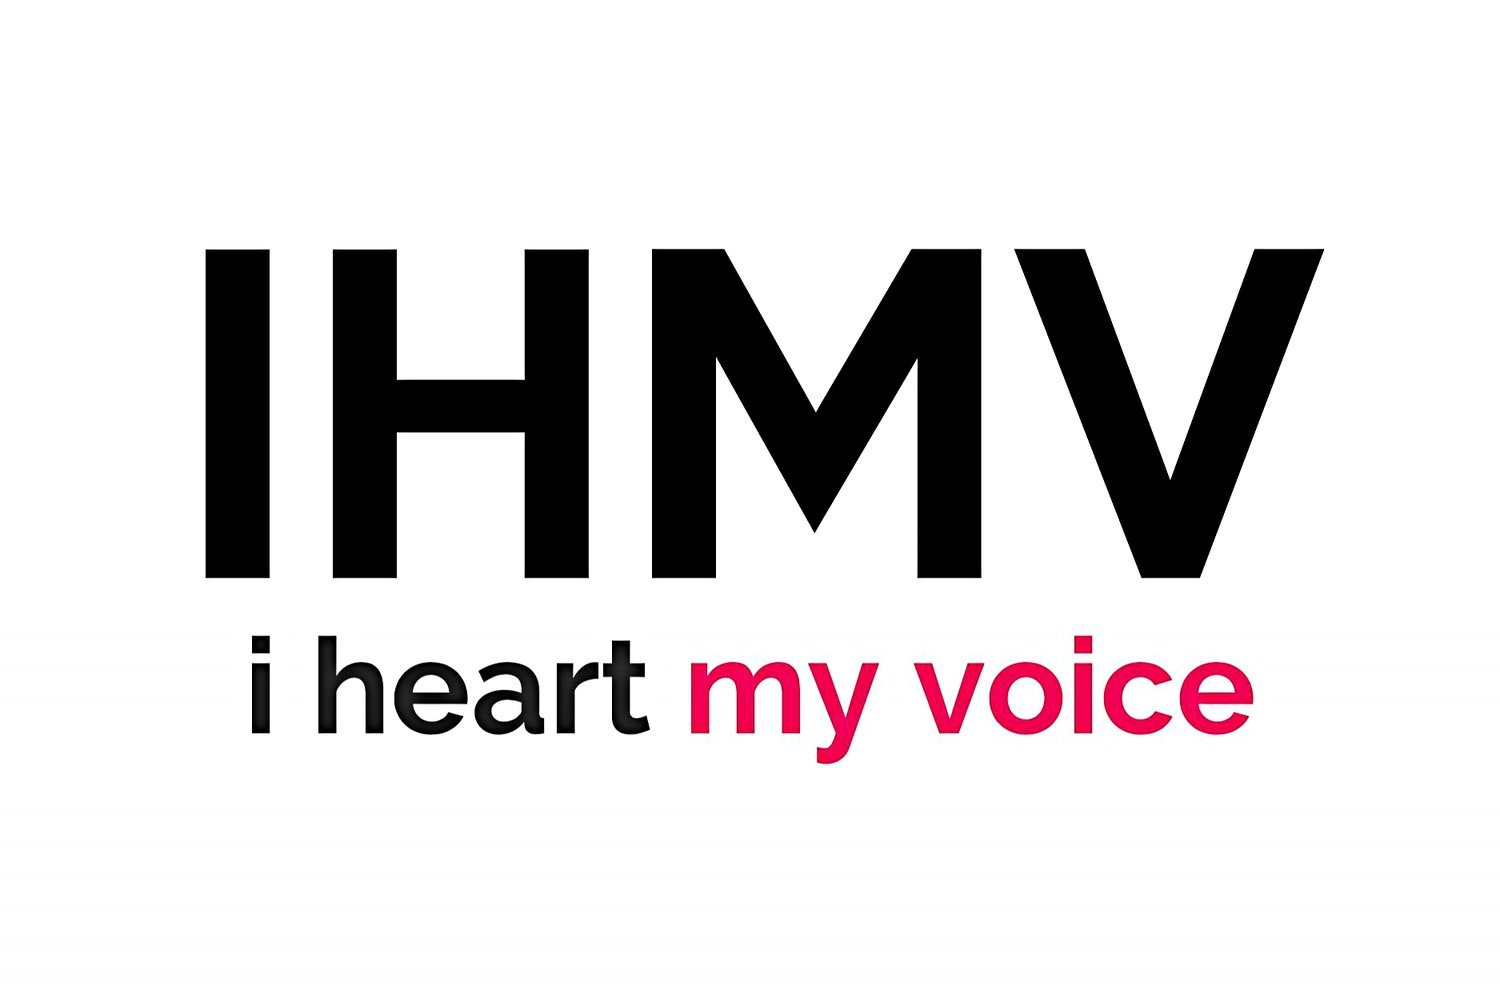 I Heart My Voice